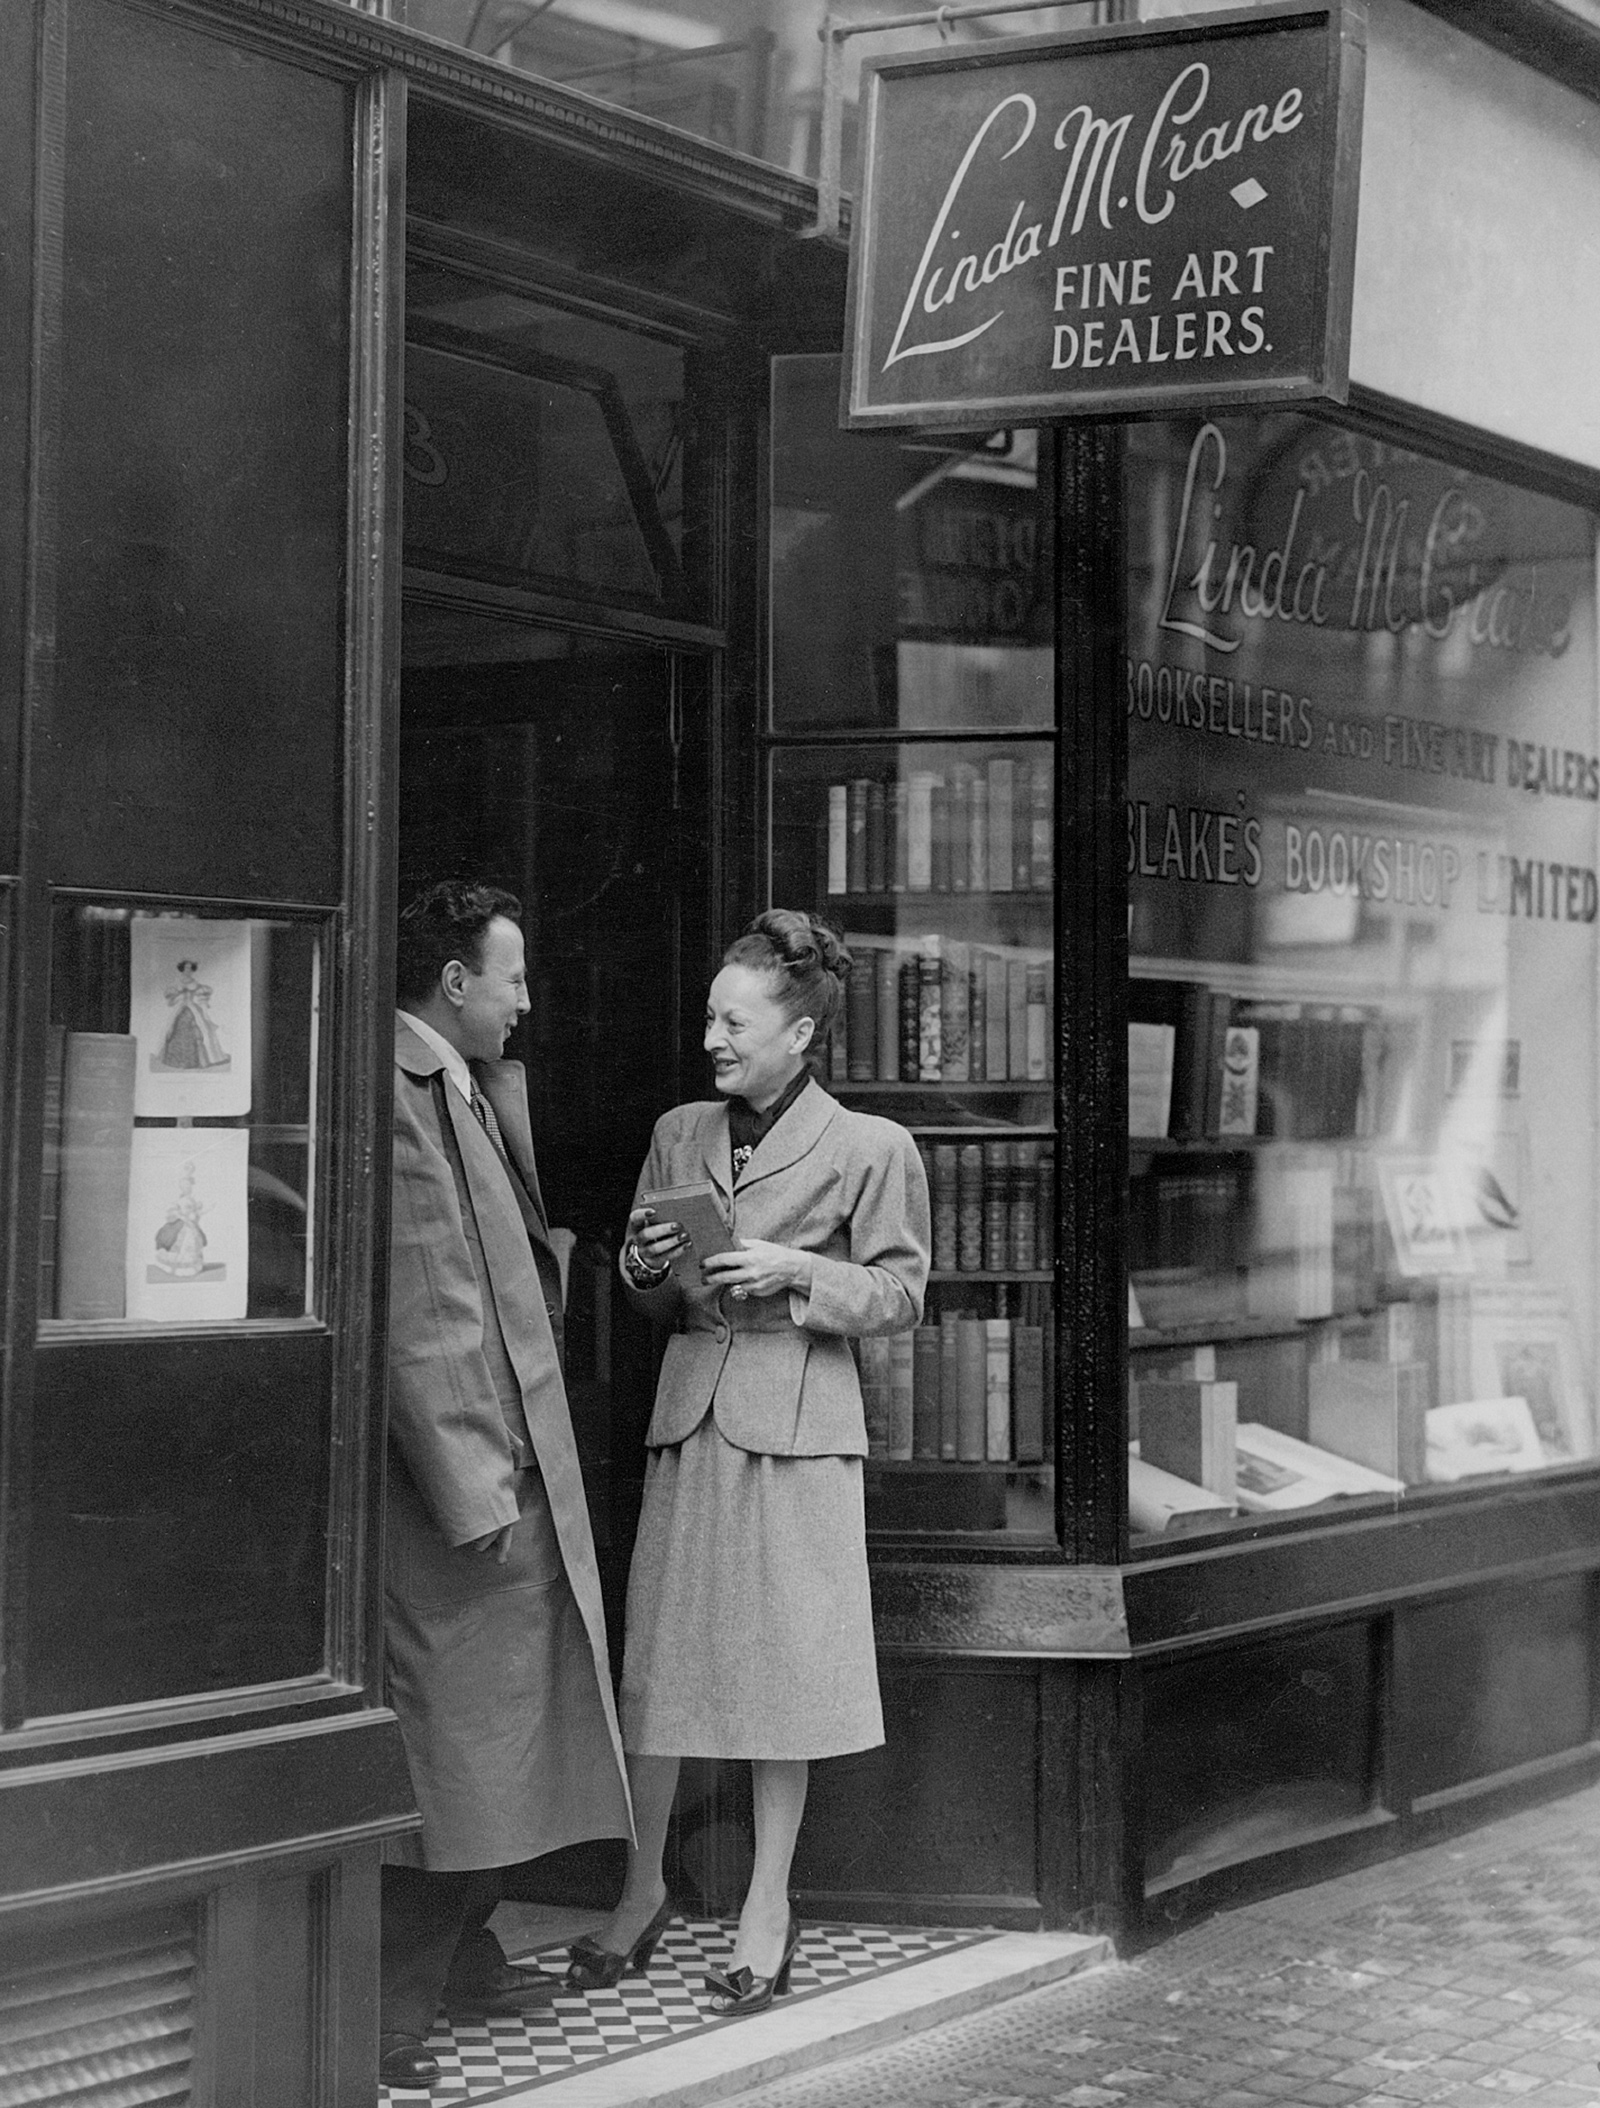 Blanche Knopf at Blake's Bookshop, London, summer 1946